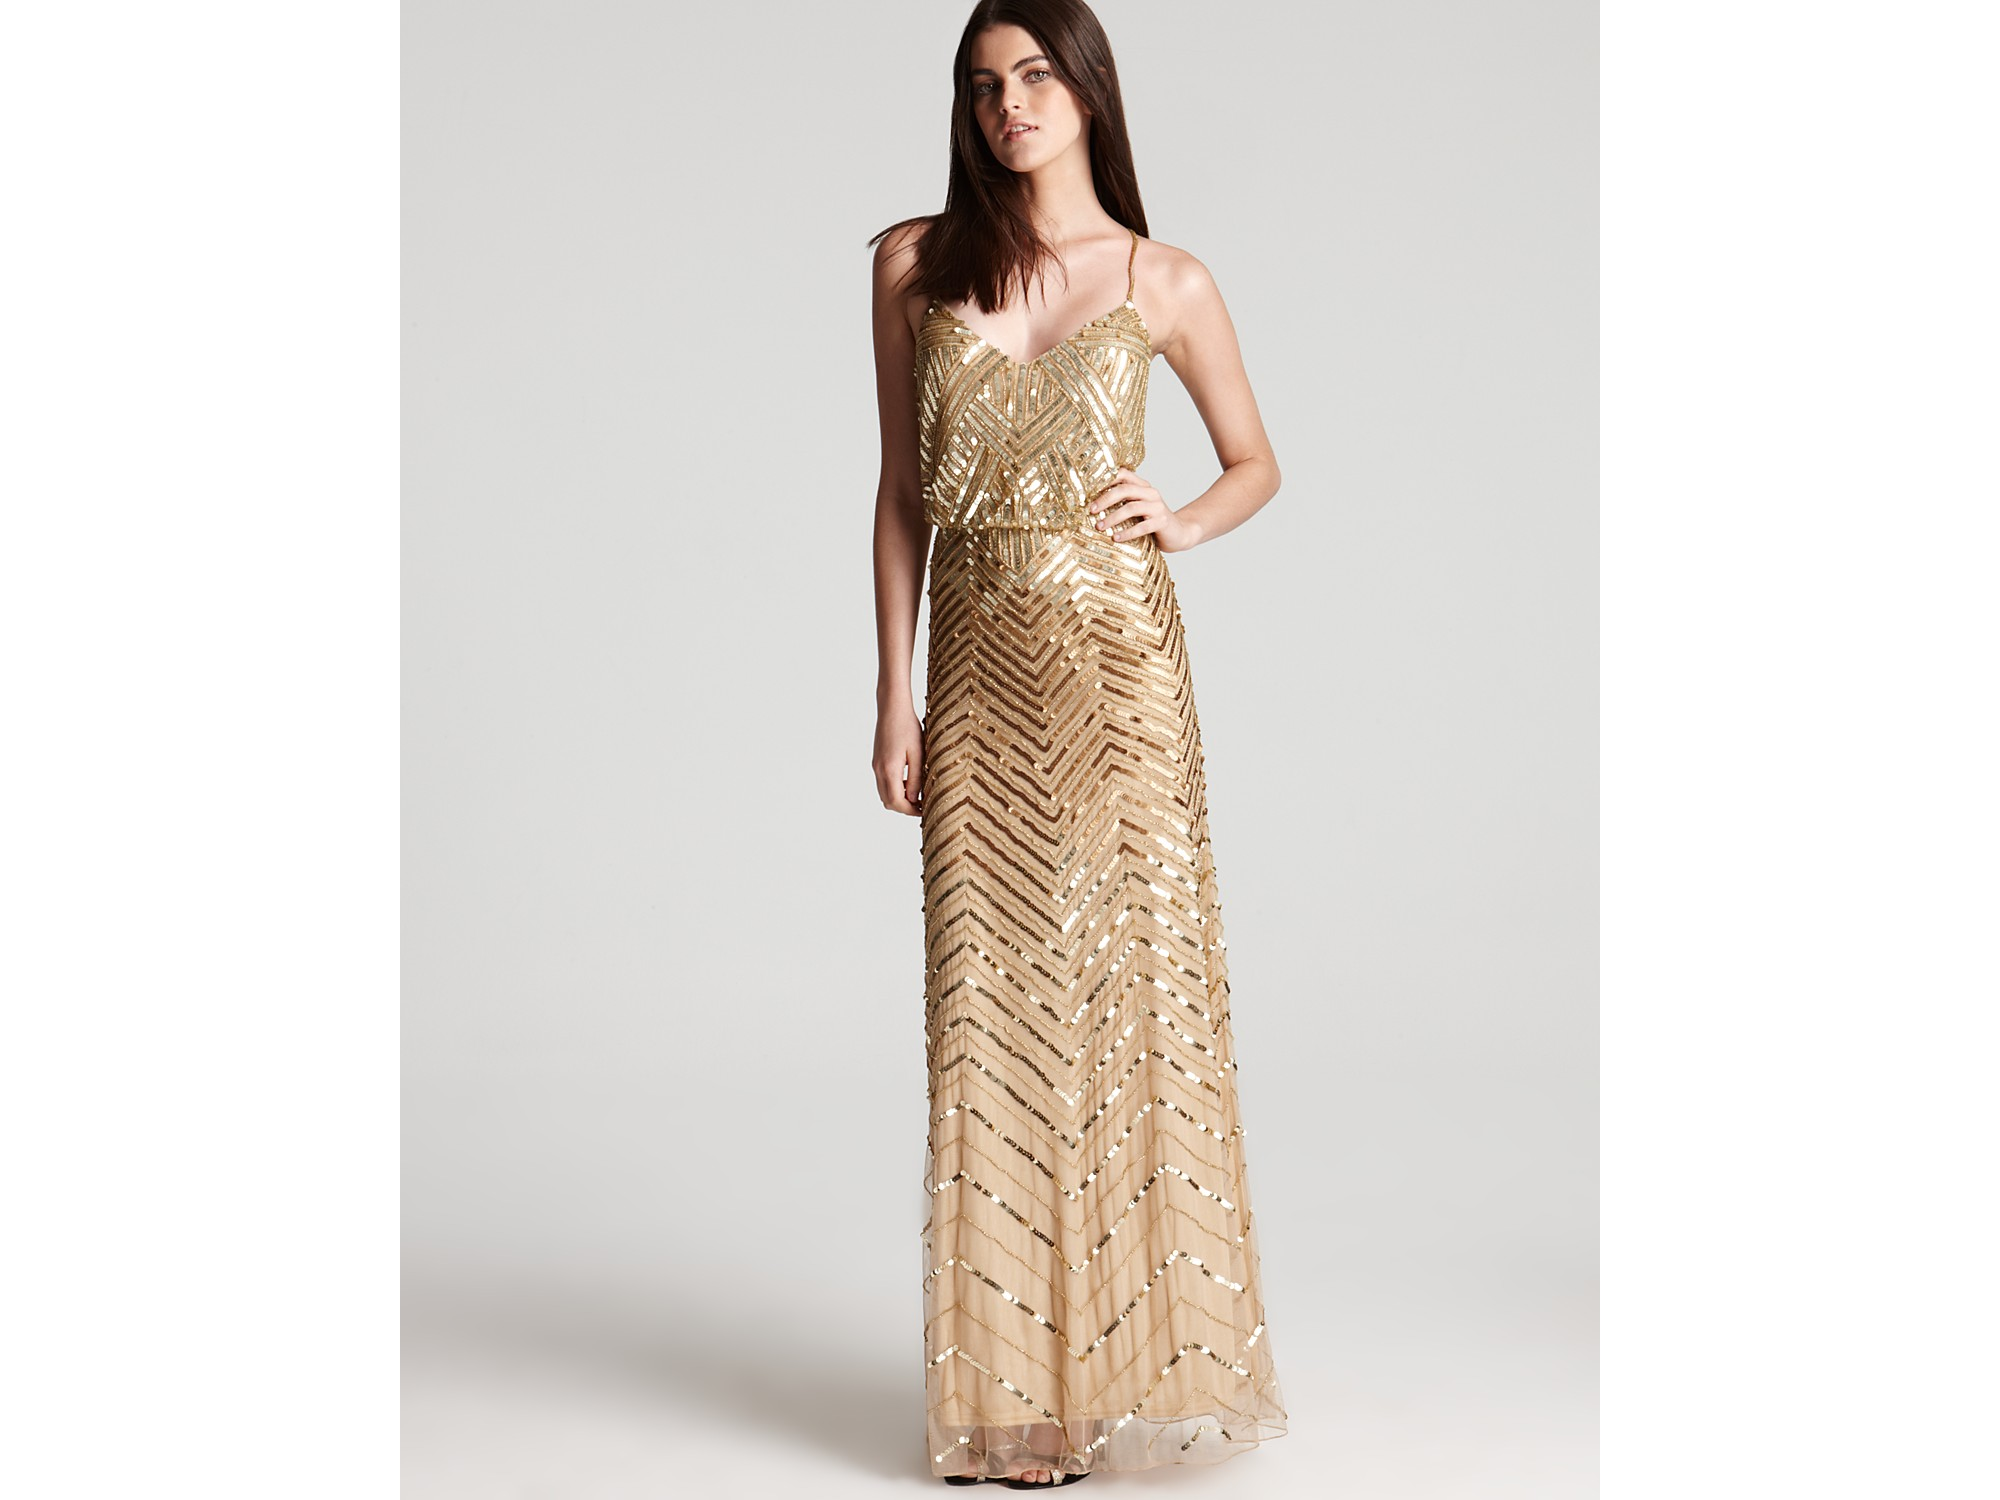 Lyst Adrianna Papell Beaded Gown Sleeveless V Neck Blouson In Metallic